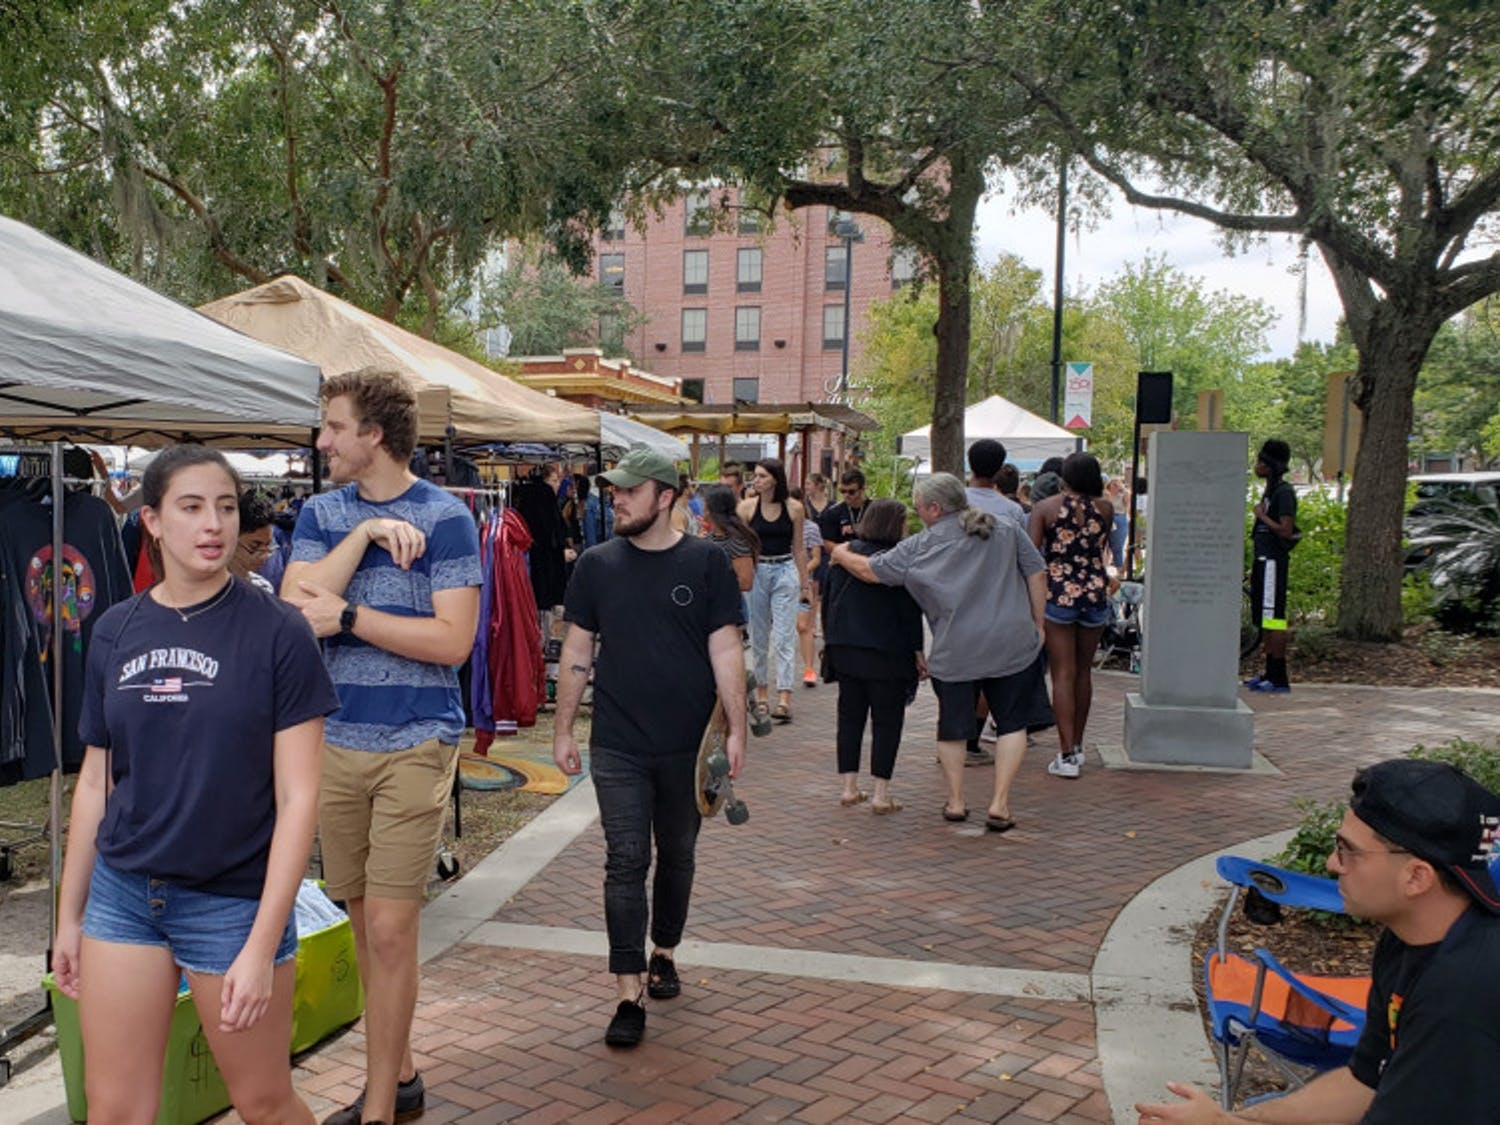 The Gainesville community visits the Florida Vintage Market at Bo Diddley Plaza on Oct. 6.